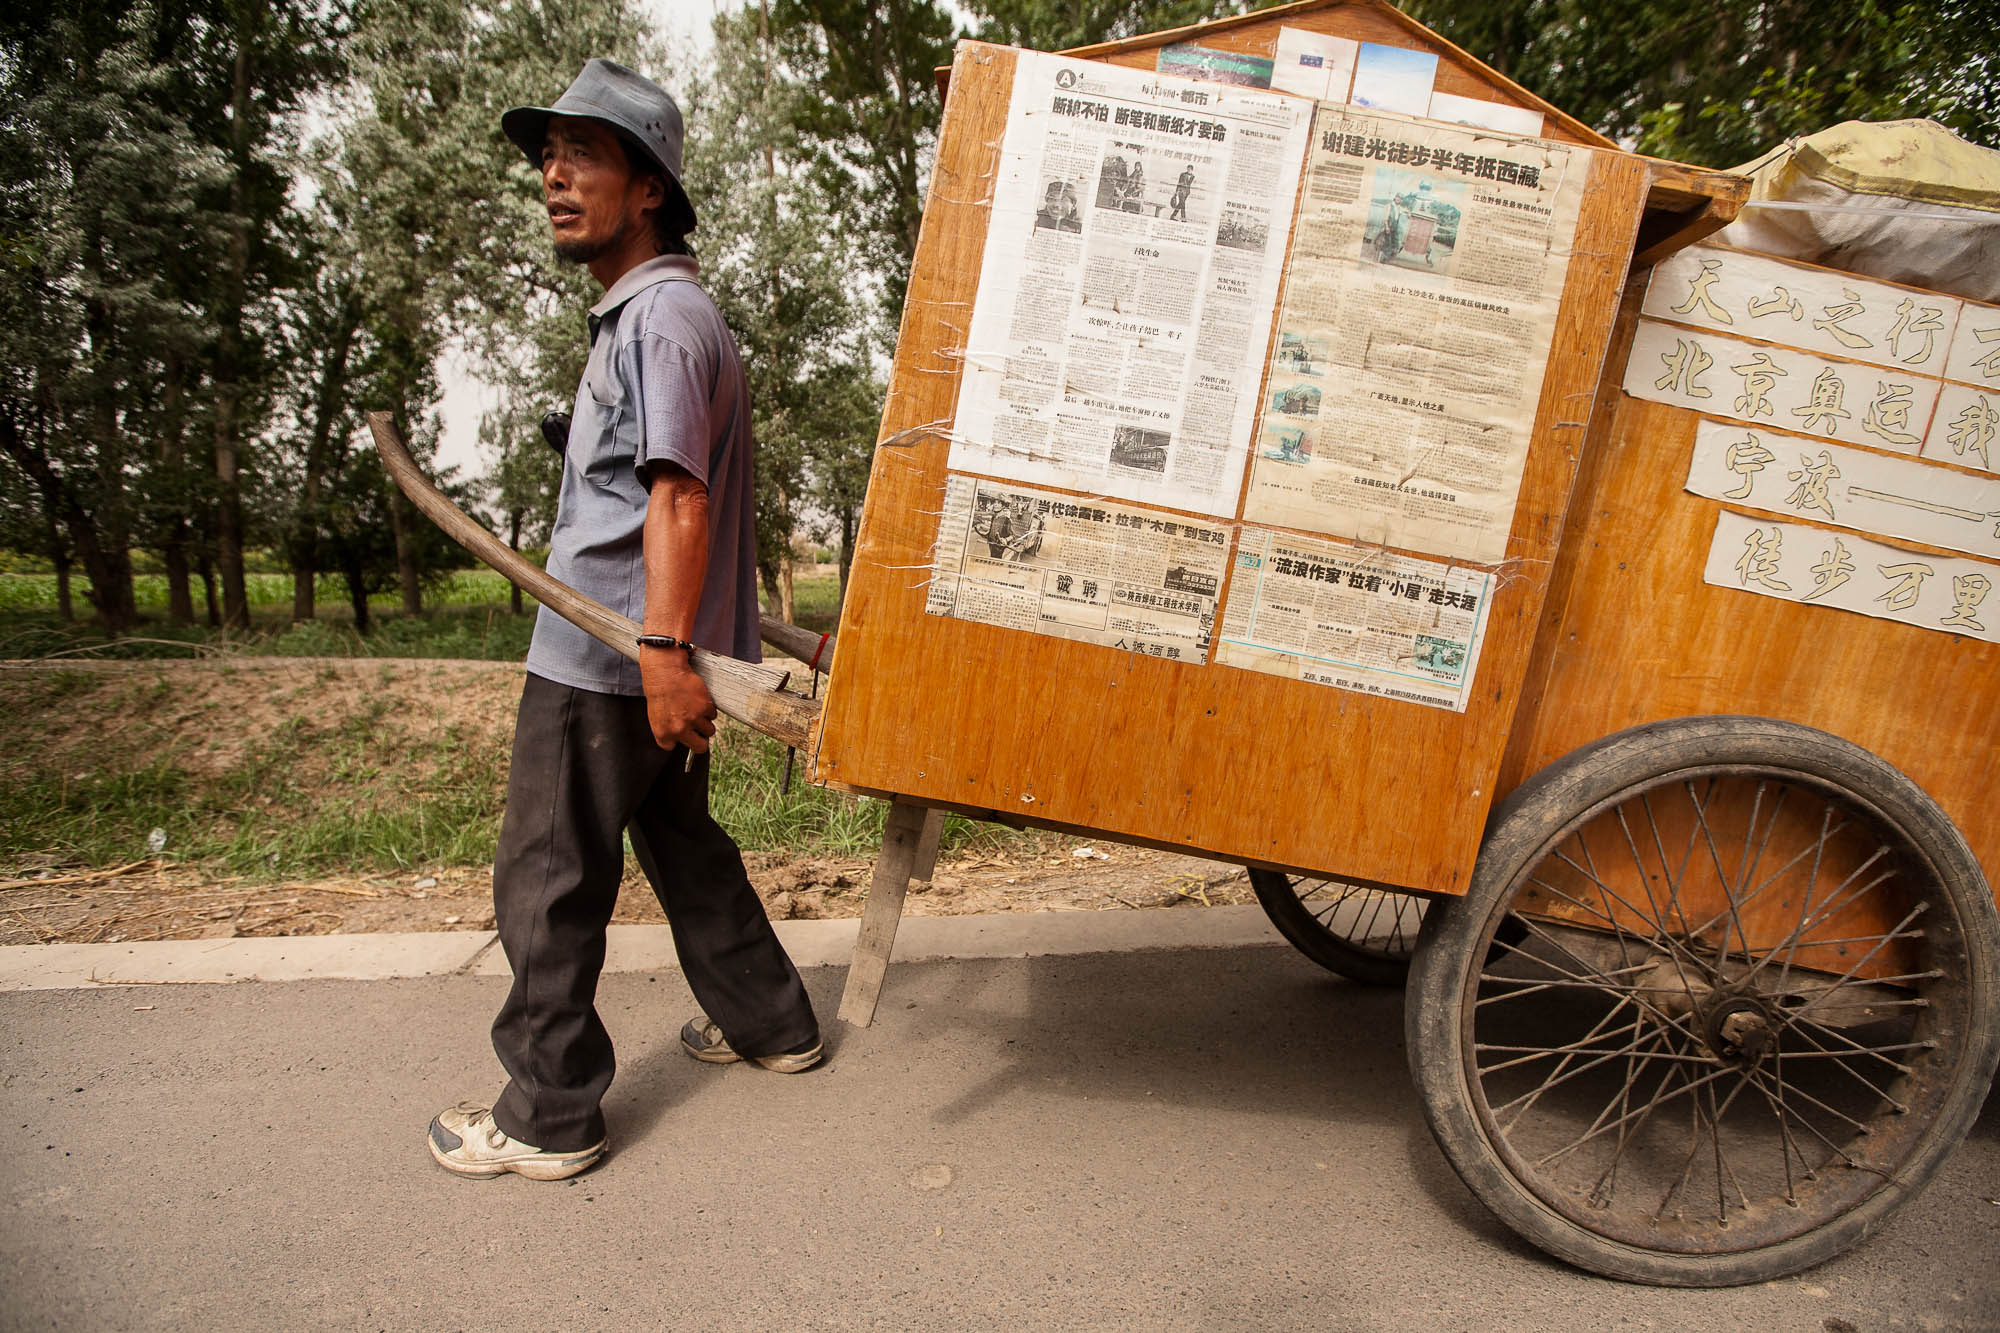 cart with newspaper clippings